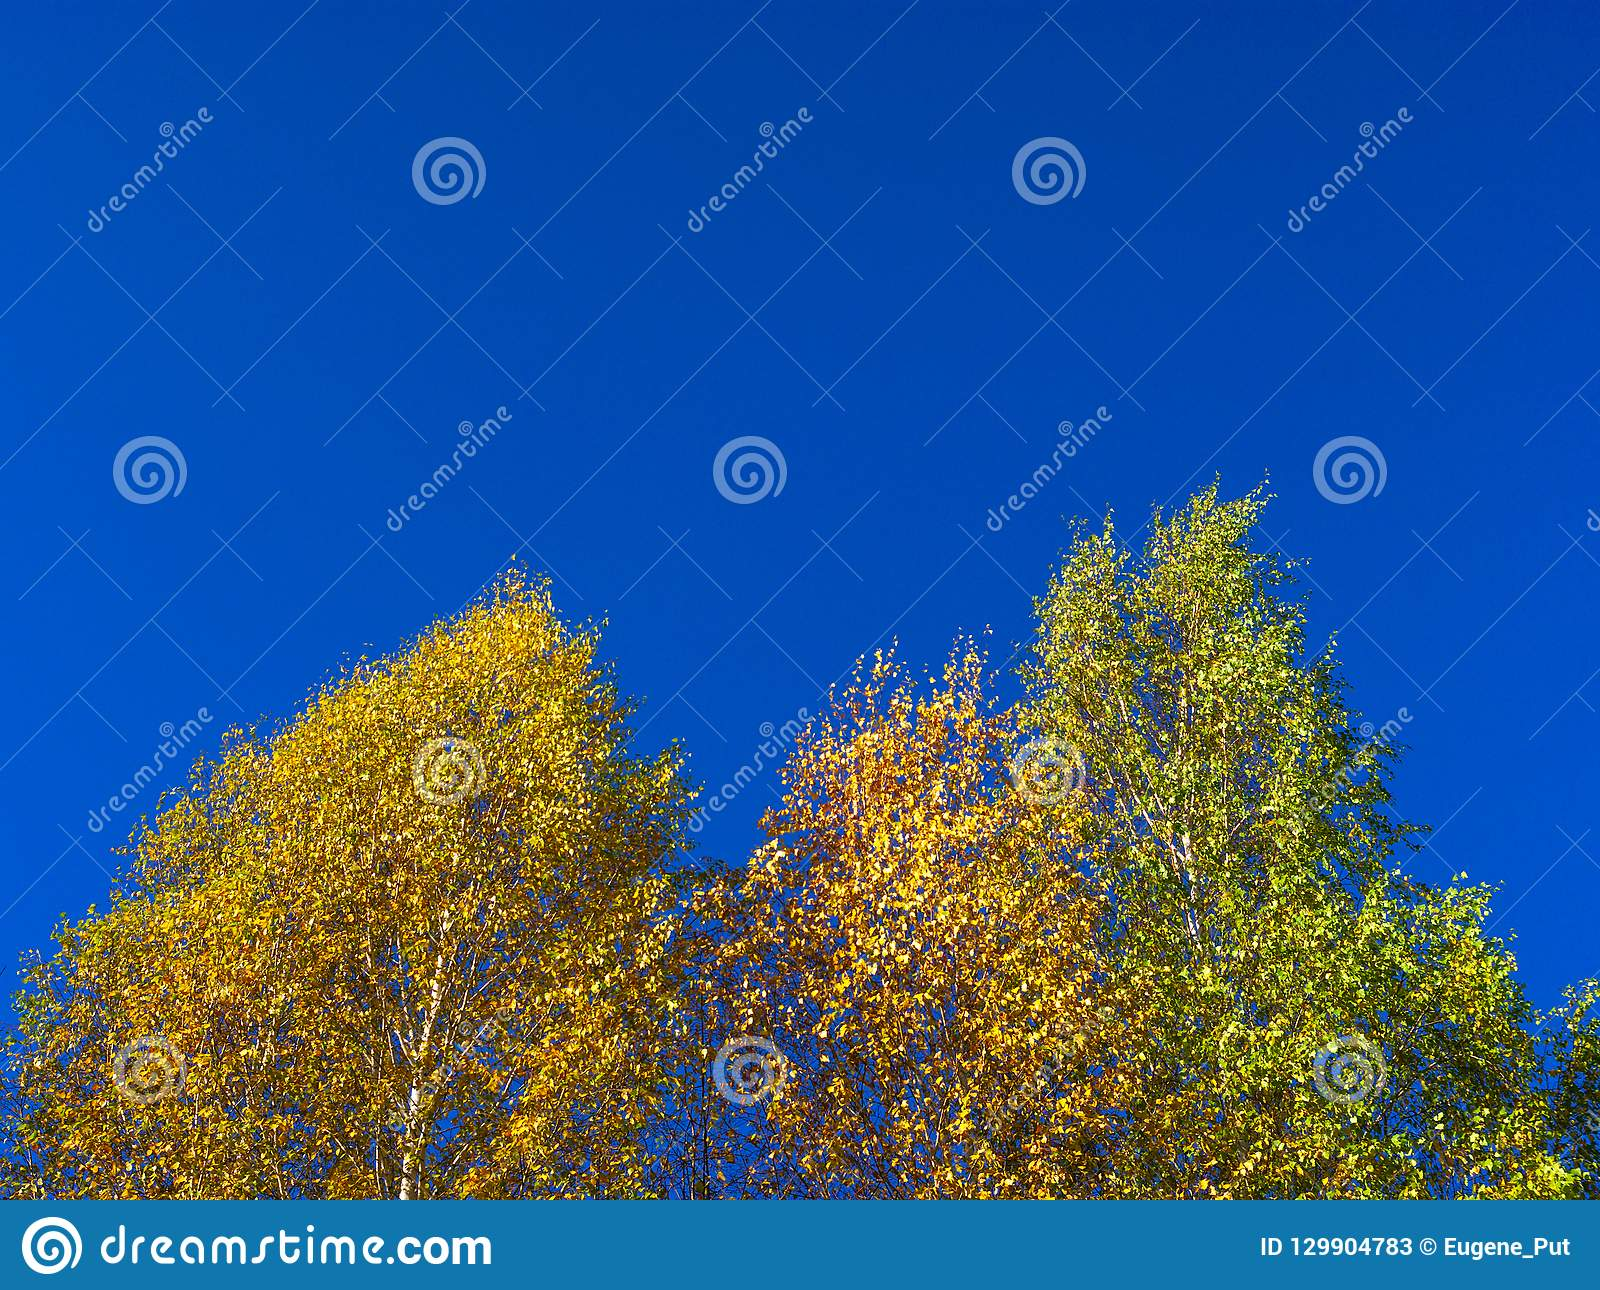 Looking Up The Birch Tree Tops Against Blue Sky On A Sunny Fall Day.